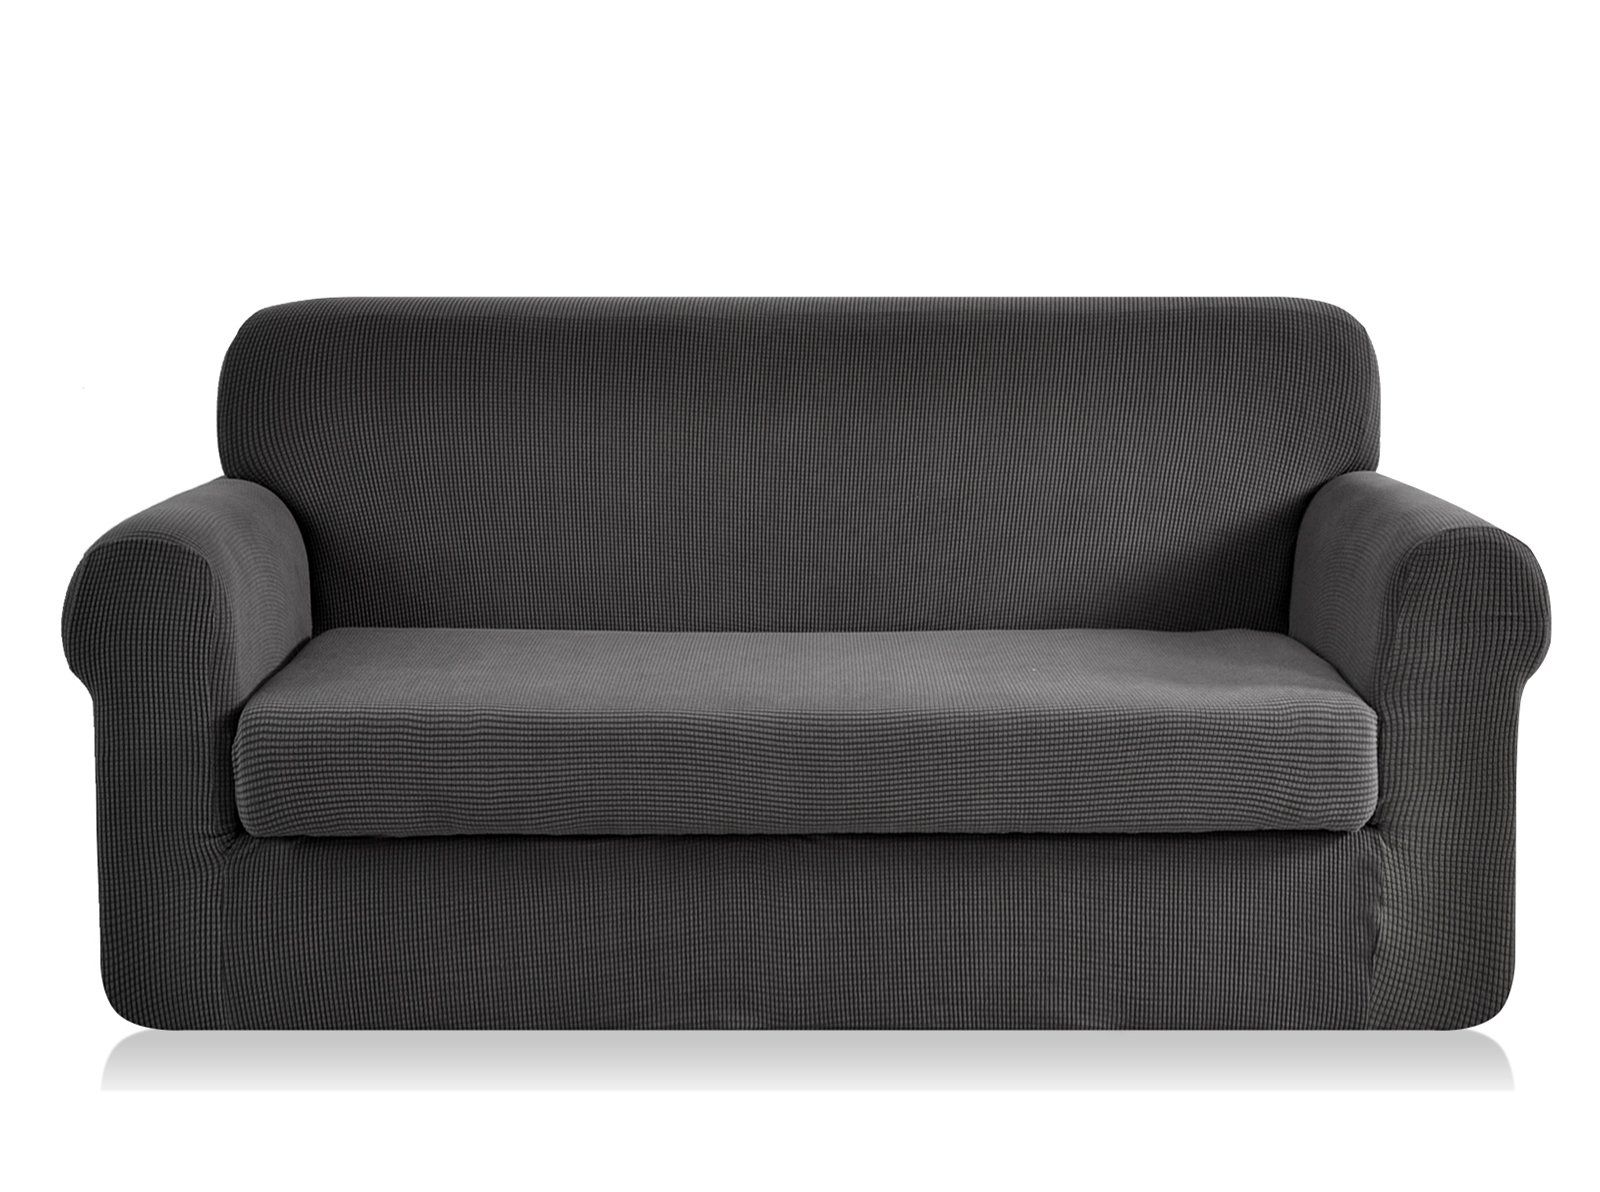 Chun Yi Jacquard Oversize Sofa Covers 2piece Stretch Polyester Spandex Fabric Xl Couch Slipcover 4 Seater Cushio In 2020 Slipcovered Sofa Slipcovers Leather Sofa Couch